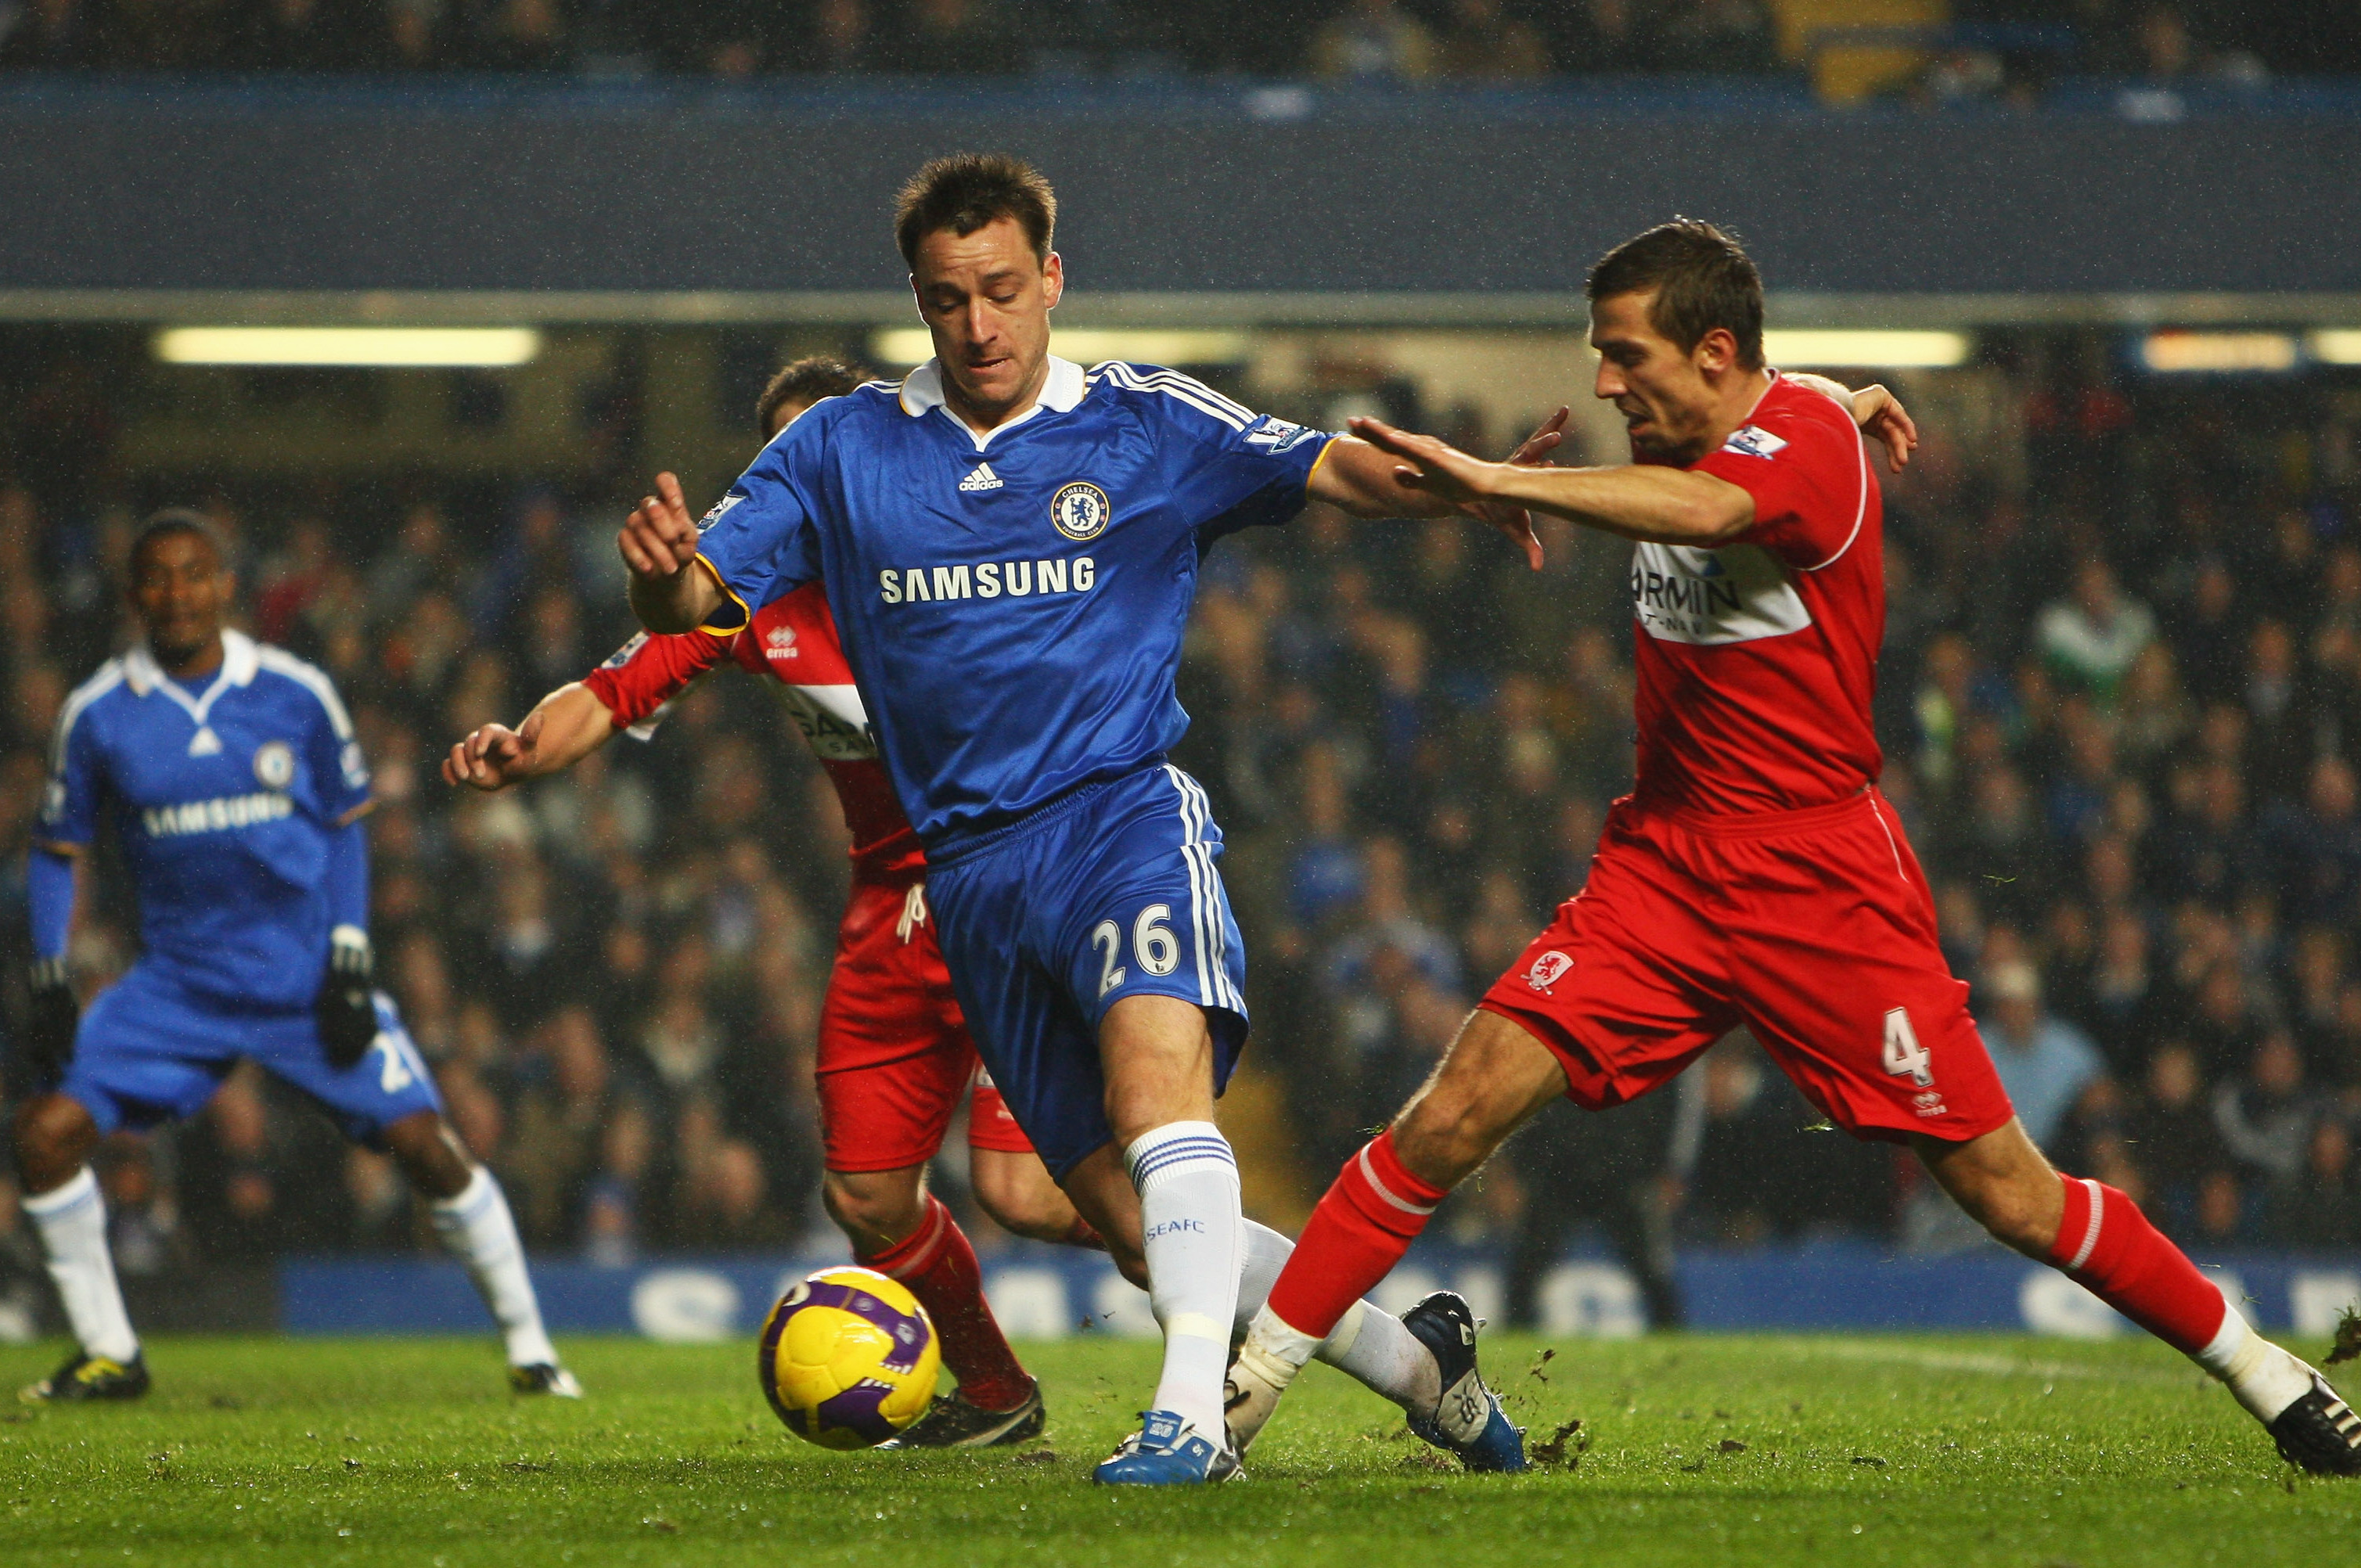 Middlesbrough chelsea betting preview how csgo lounge betting works cited